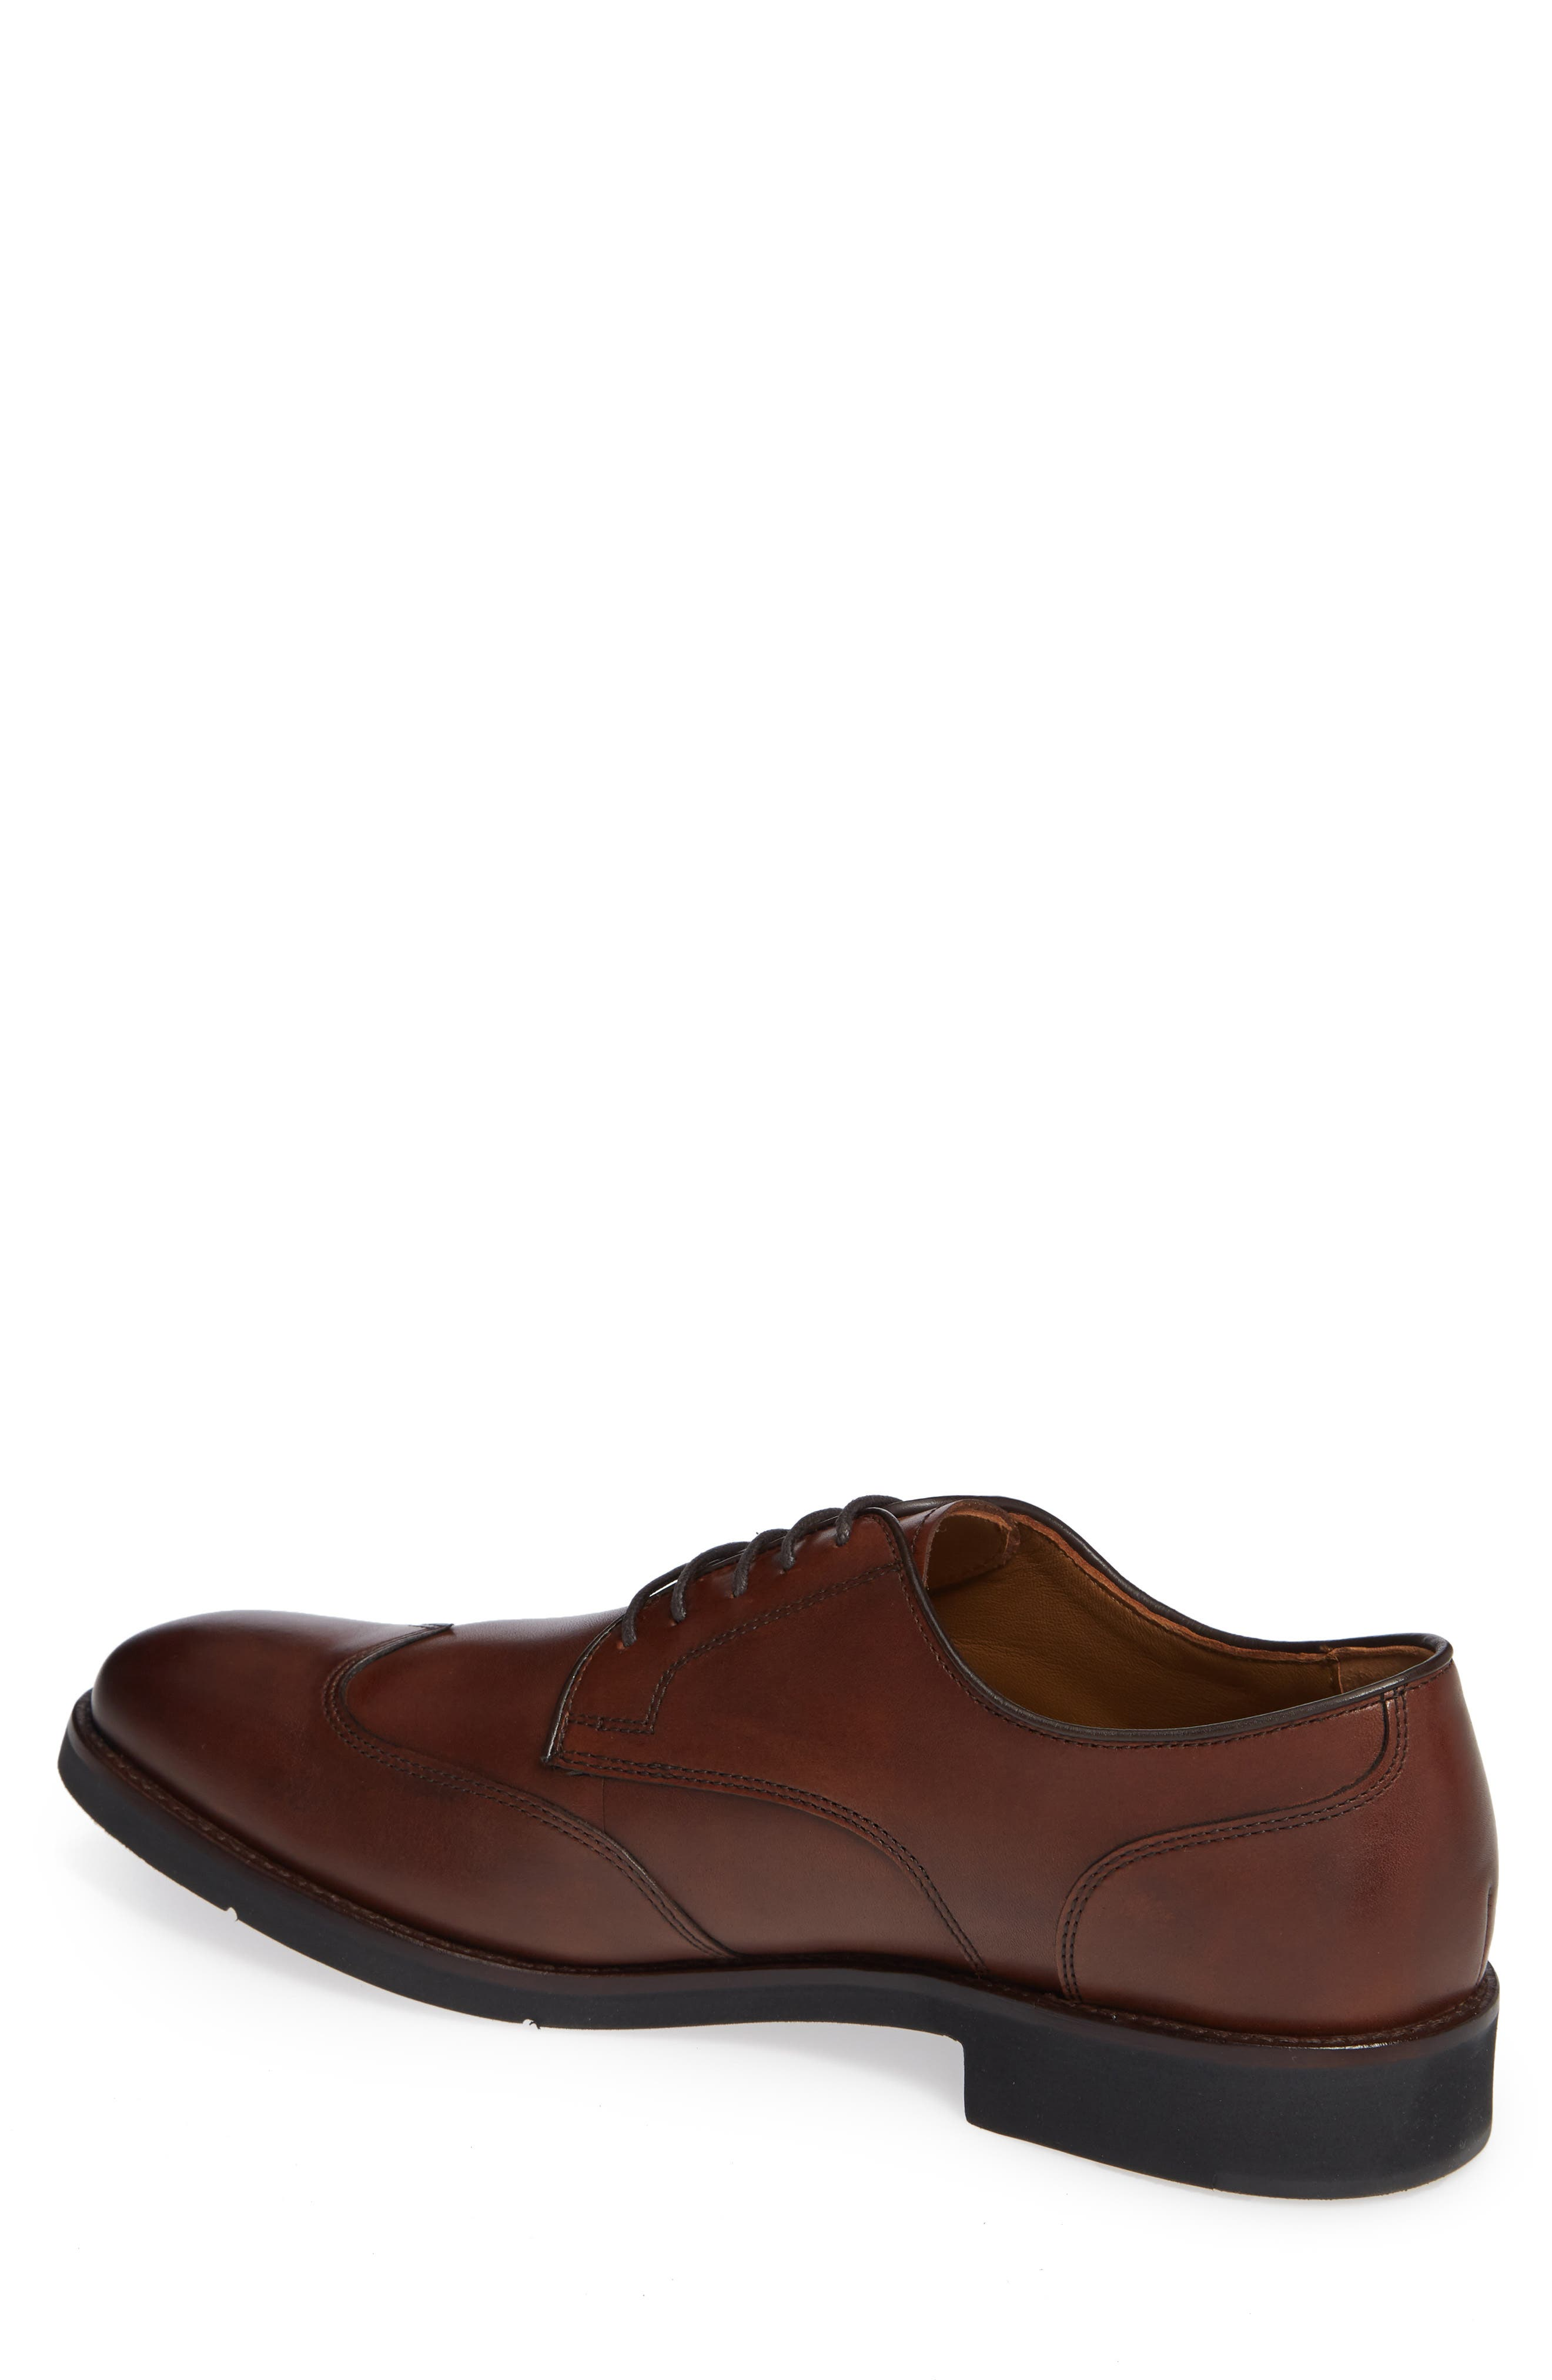 Carlson Wingtip,                             Alternate thumbnail 2, color,                             OAK LEATHER